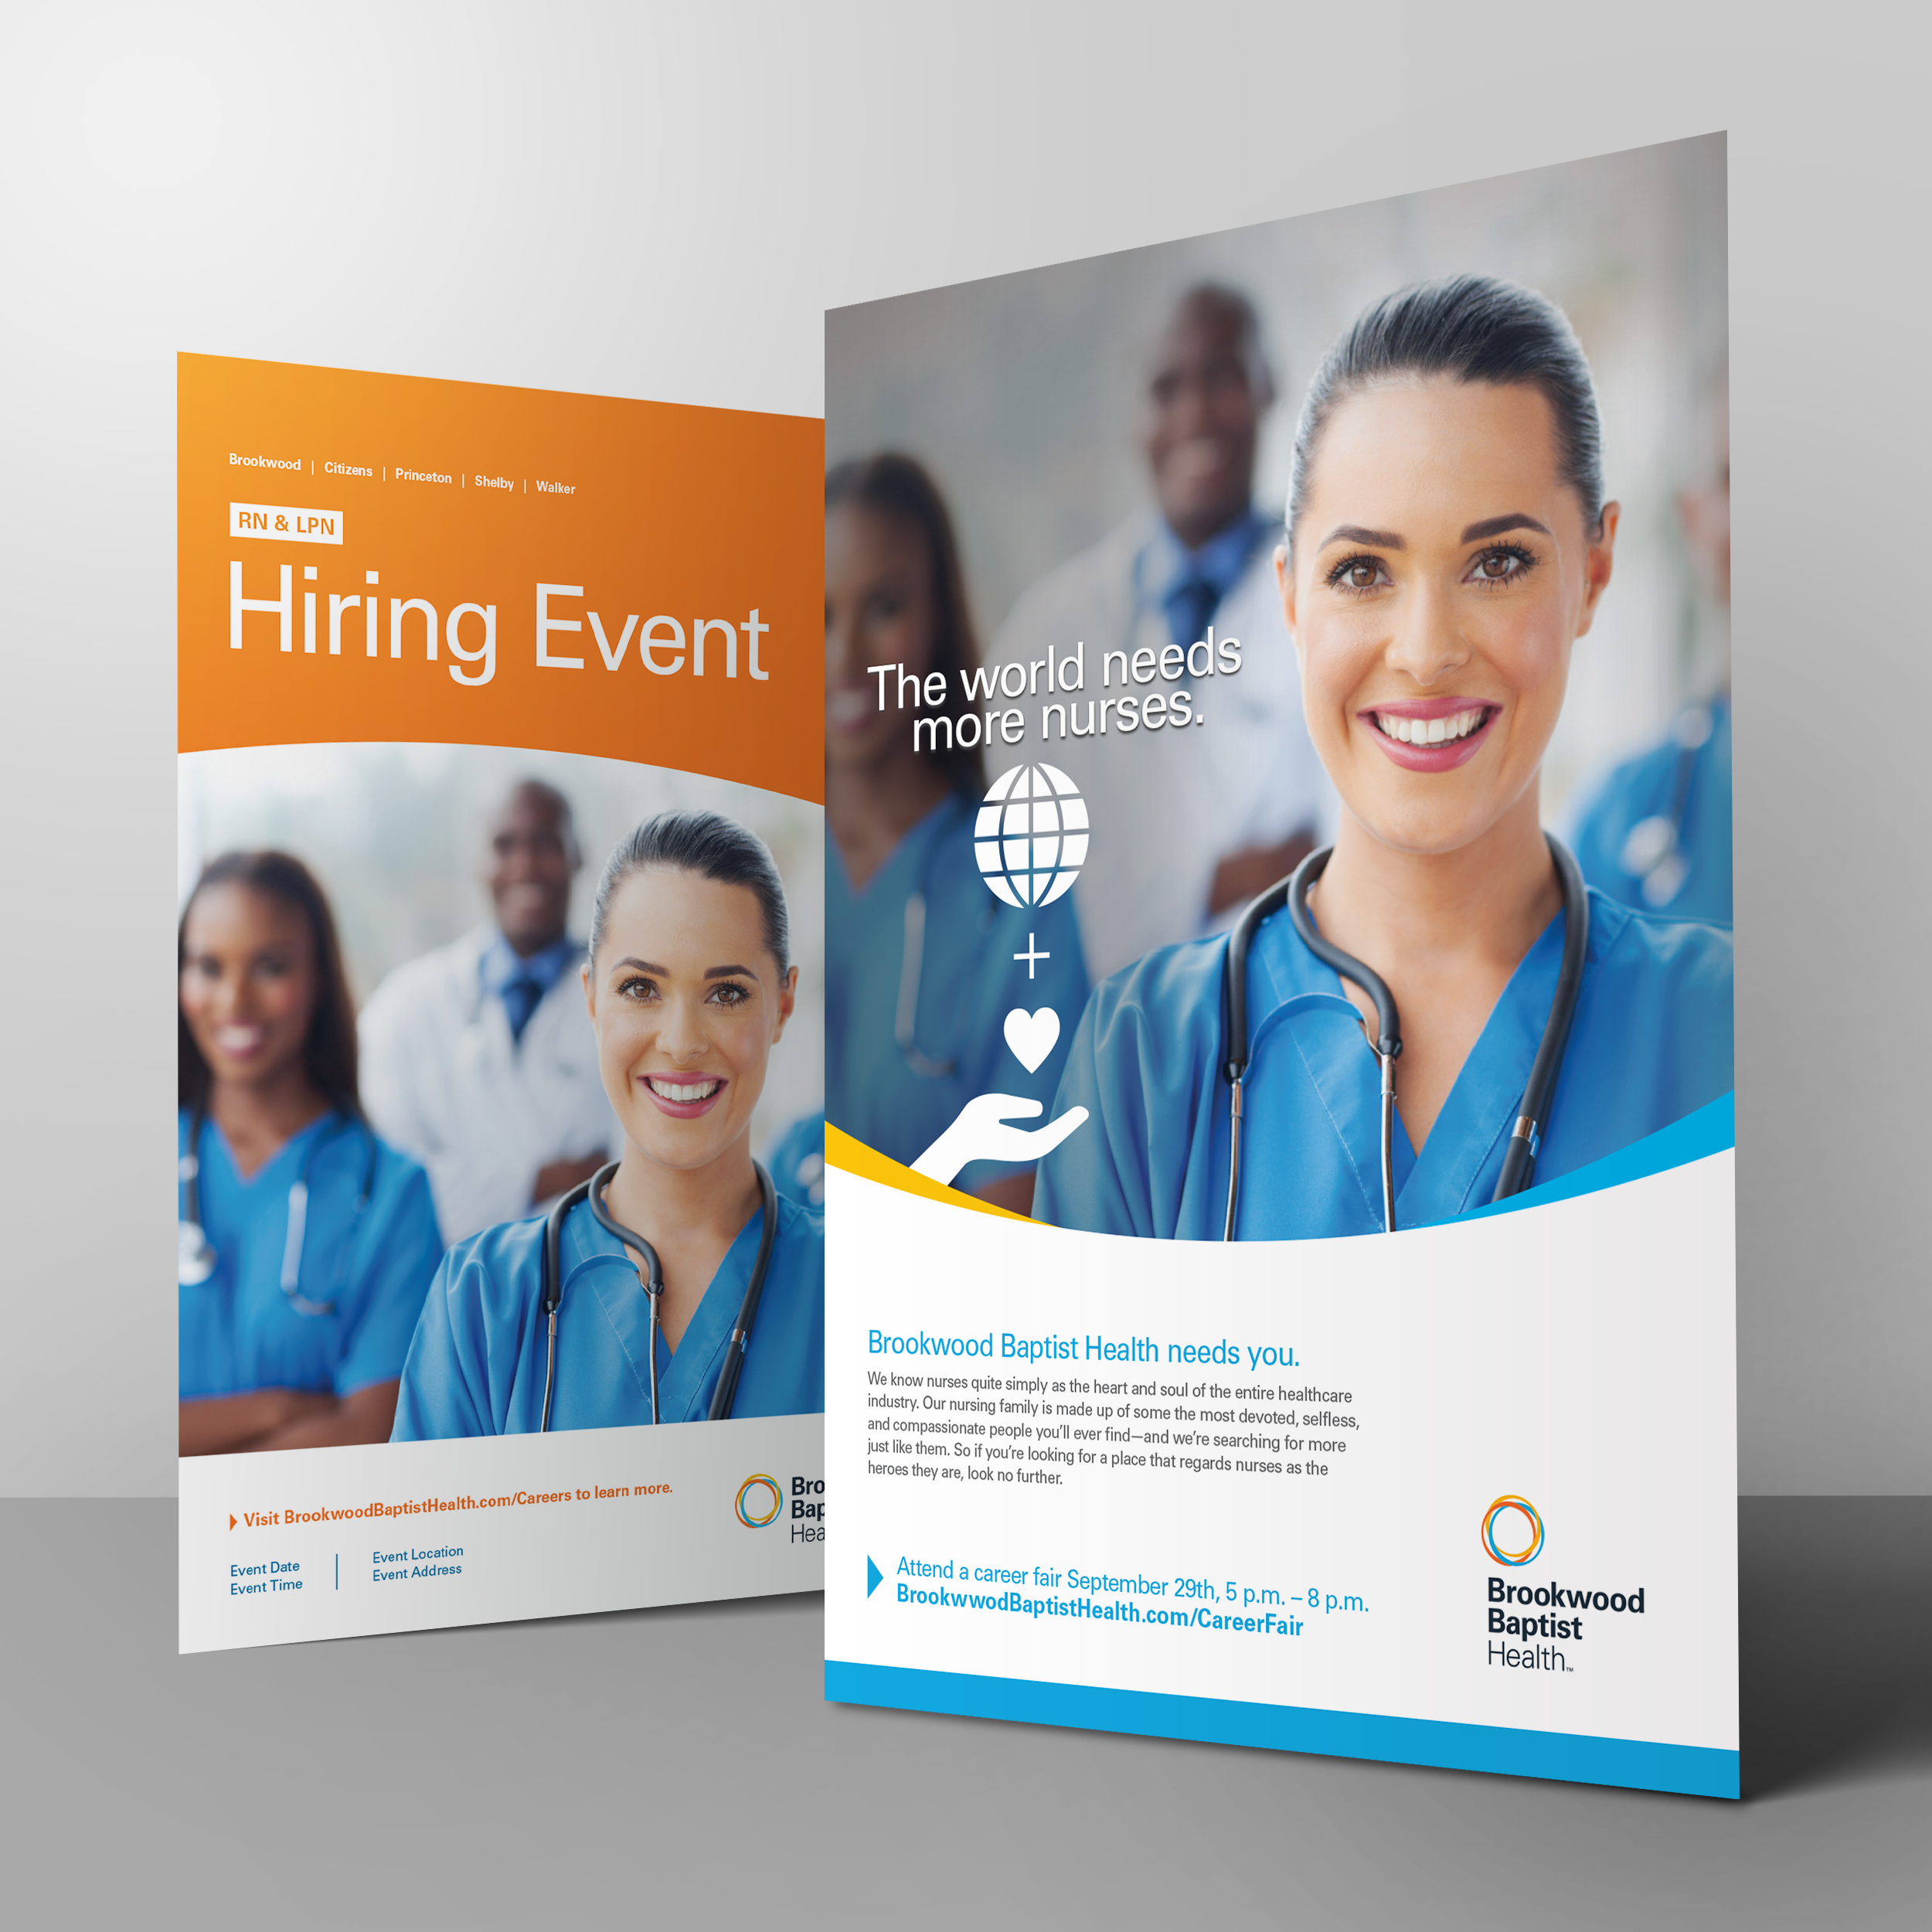 Hiring Event Flyer.png